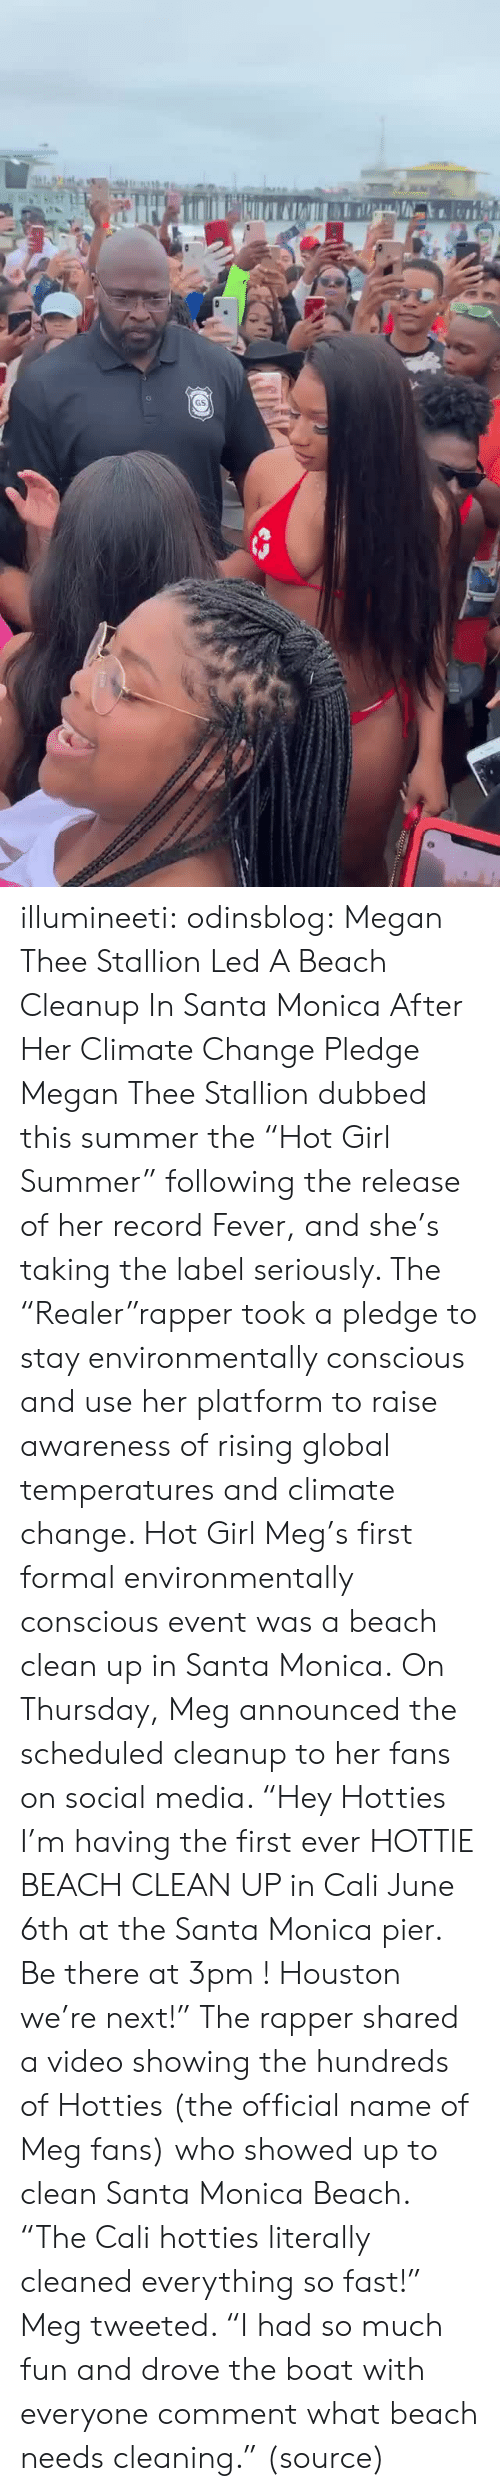 "First Ever: GS illumineeti: odinsblog:    Megan Thee Stallion Led A Beach Cleanup In Santa Monica After Her Climate Change Pledge Megan Thee Stallion dubbed this summer the ""Hot Girl Summer"" following the release of her record Fever, and she's taking the label seriously. The ""Realer""rapper took a pledge to stay environmentally conscious and use her platform to raise awareness of rising global temperatures and climate change. Hot Girl Meg's first formal environmentally conscious event was a beach clean up in Santa Monica. On Thursday, Meg announced the scheduled cleanup to her fans on social media. ""Hey Hotties I'm having the first ever HOTTIE BEACH CLEAN UP in Cali June 6th at the Santa Monica pier. Be there at 3pm ! Houston we're next!"" The rapper shared a video showing the hundreds of Hotties (the official name of Meg fans) who showed up to clean Santa Monica Beach. ""The Cali hotties literally cleaned everything so fast!"" Meg tweeted. ""I had so much fun and drove the boat with everyone comment what beach needs cleaning."" (source)"